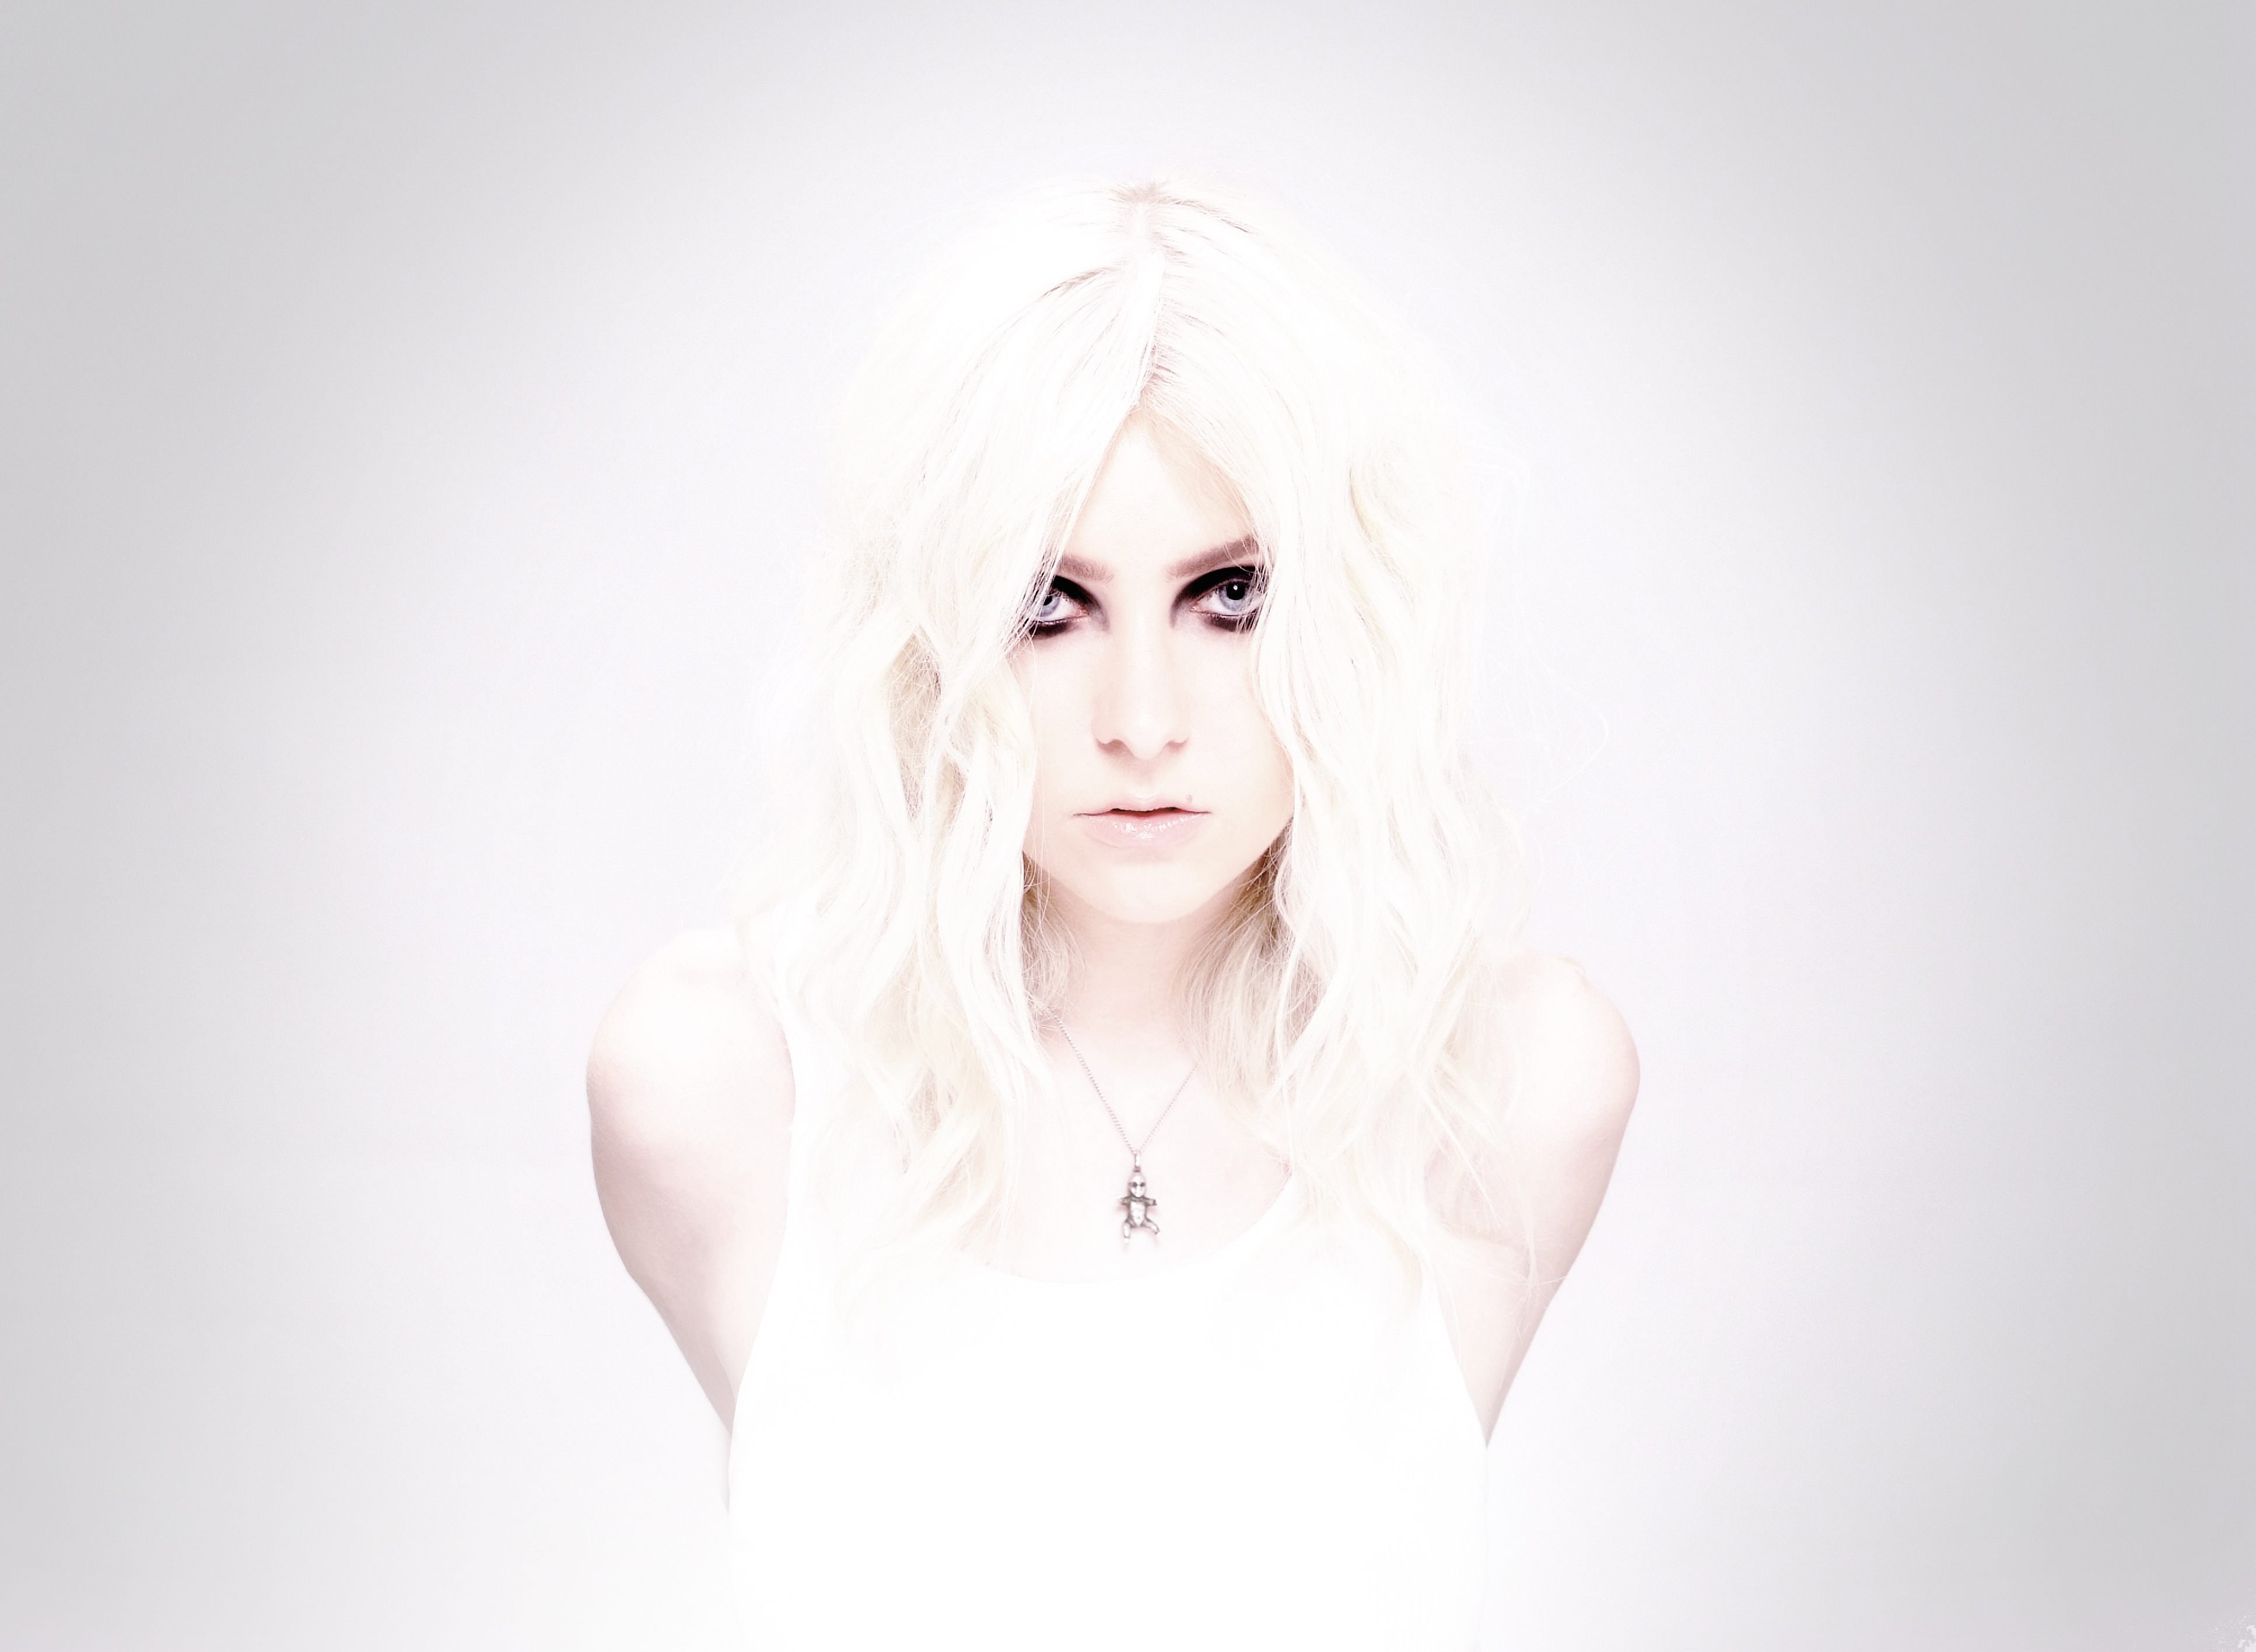 Writing is 'tortuous' but therapeutic process for Taylor Momsen, front woman of The Pretty Reckless.